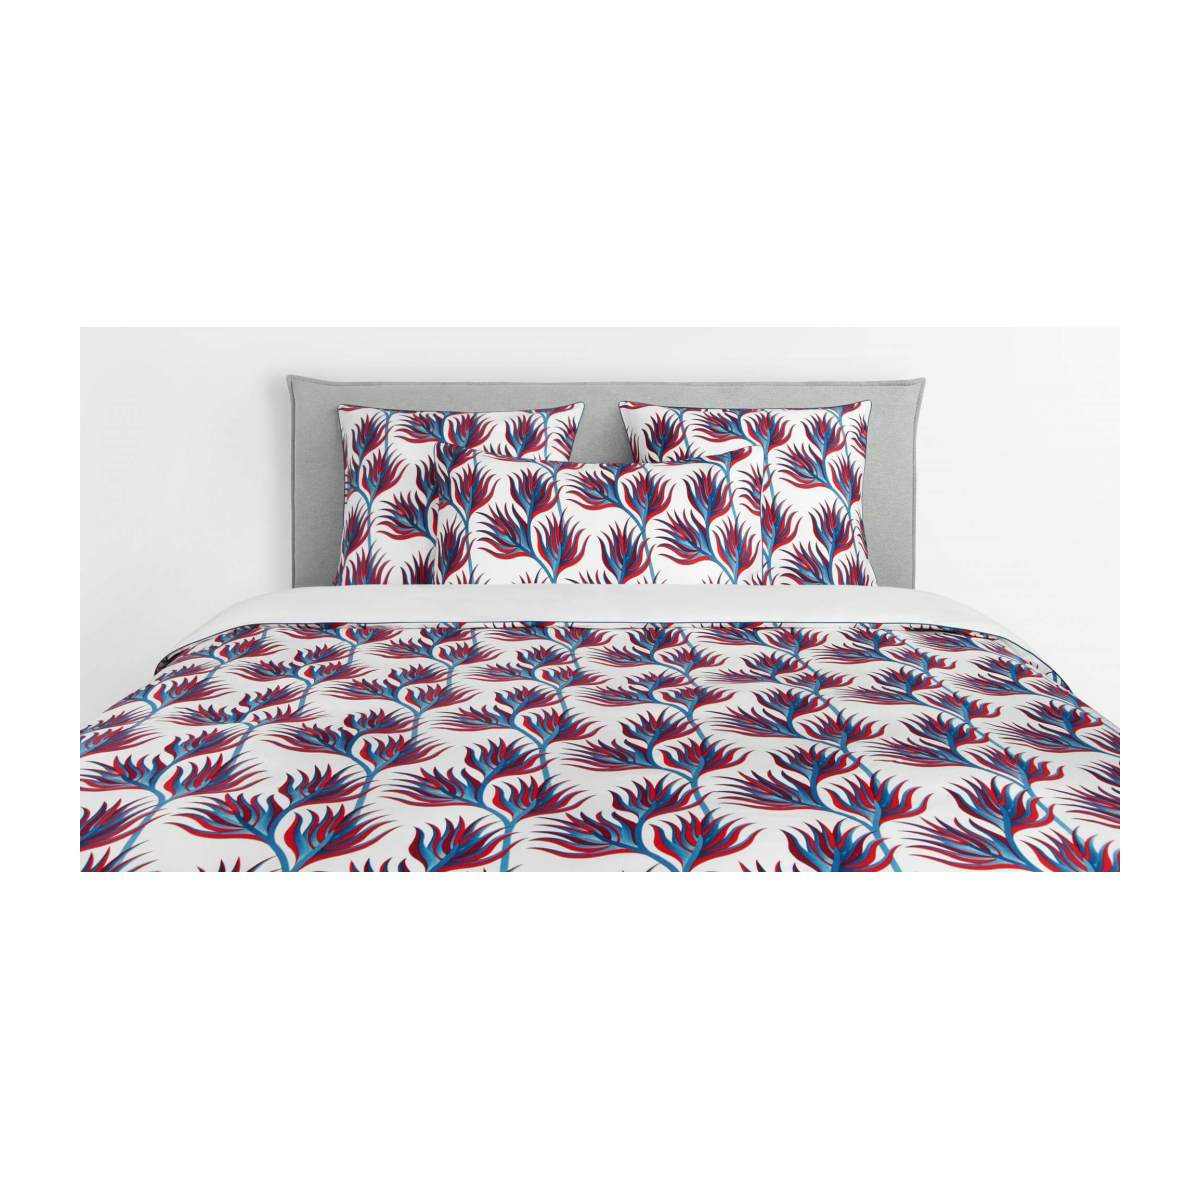 Duvet cover made of cotton 200x200cm, with patterns n°1